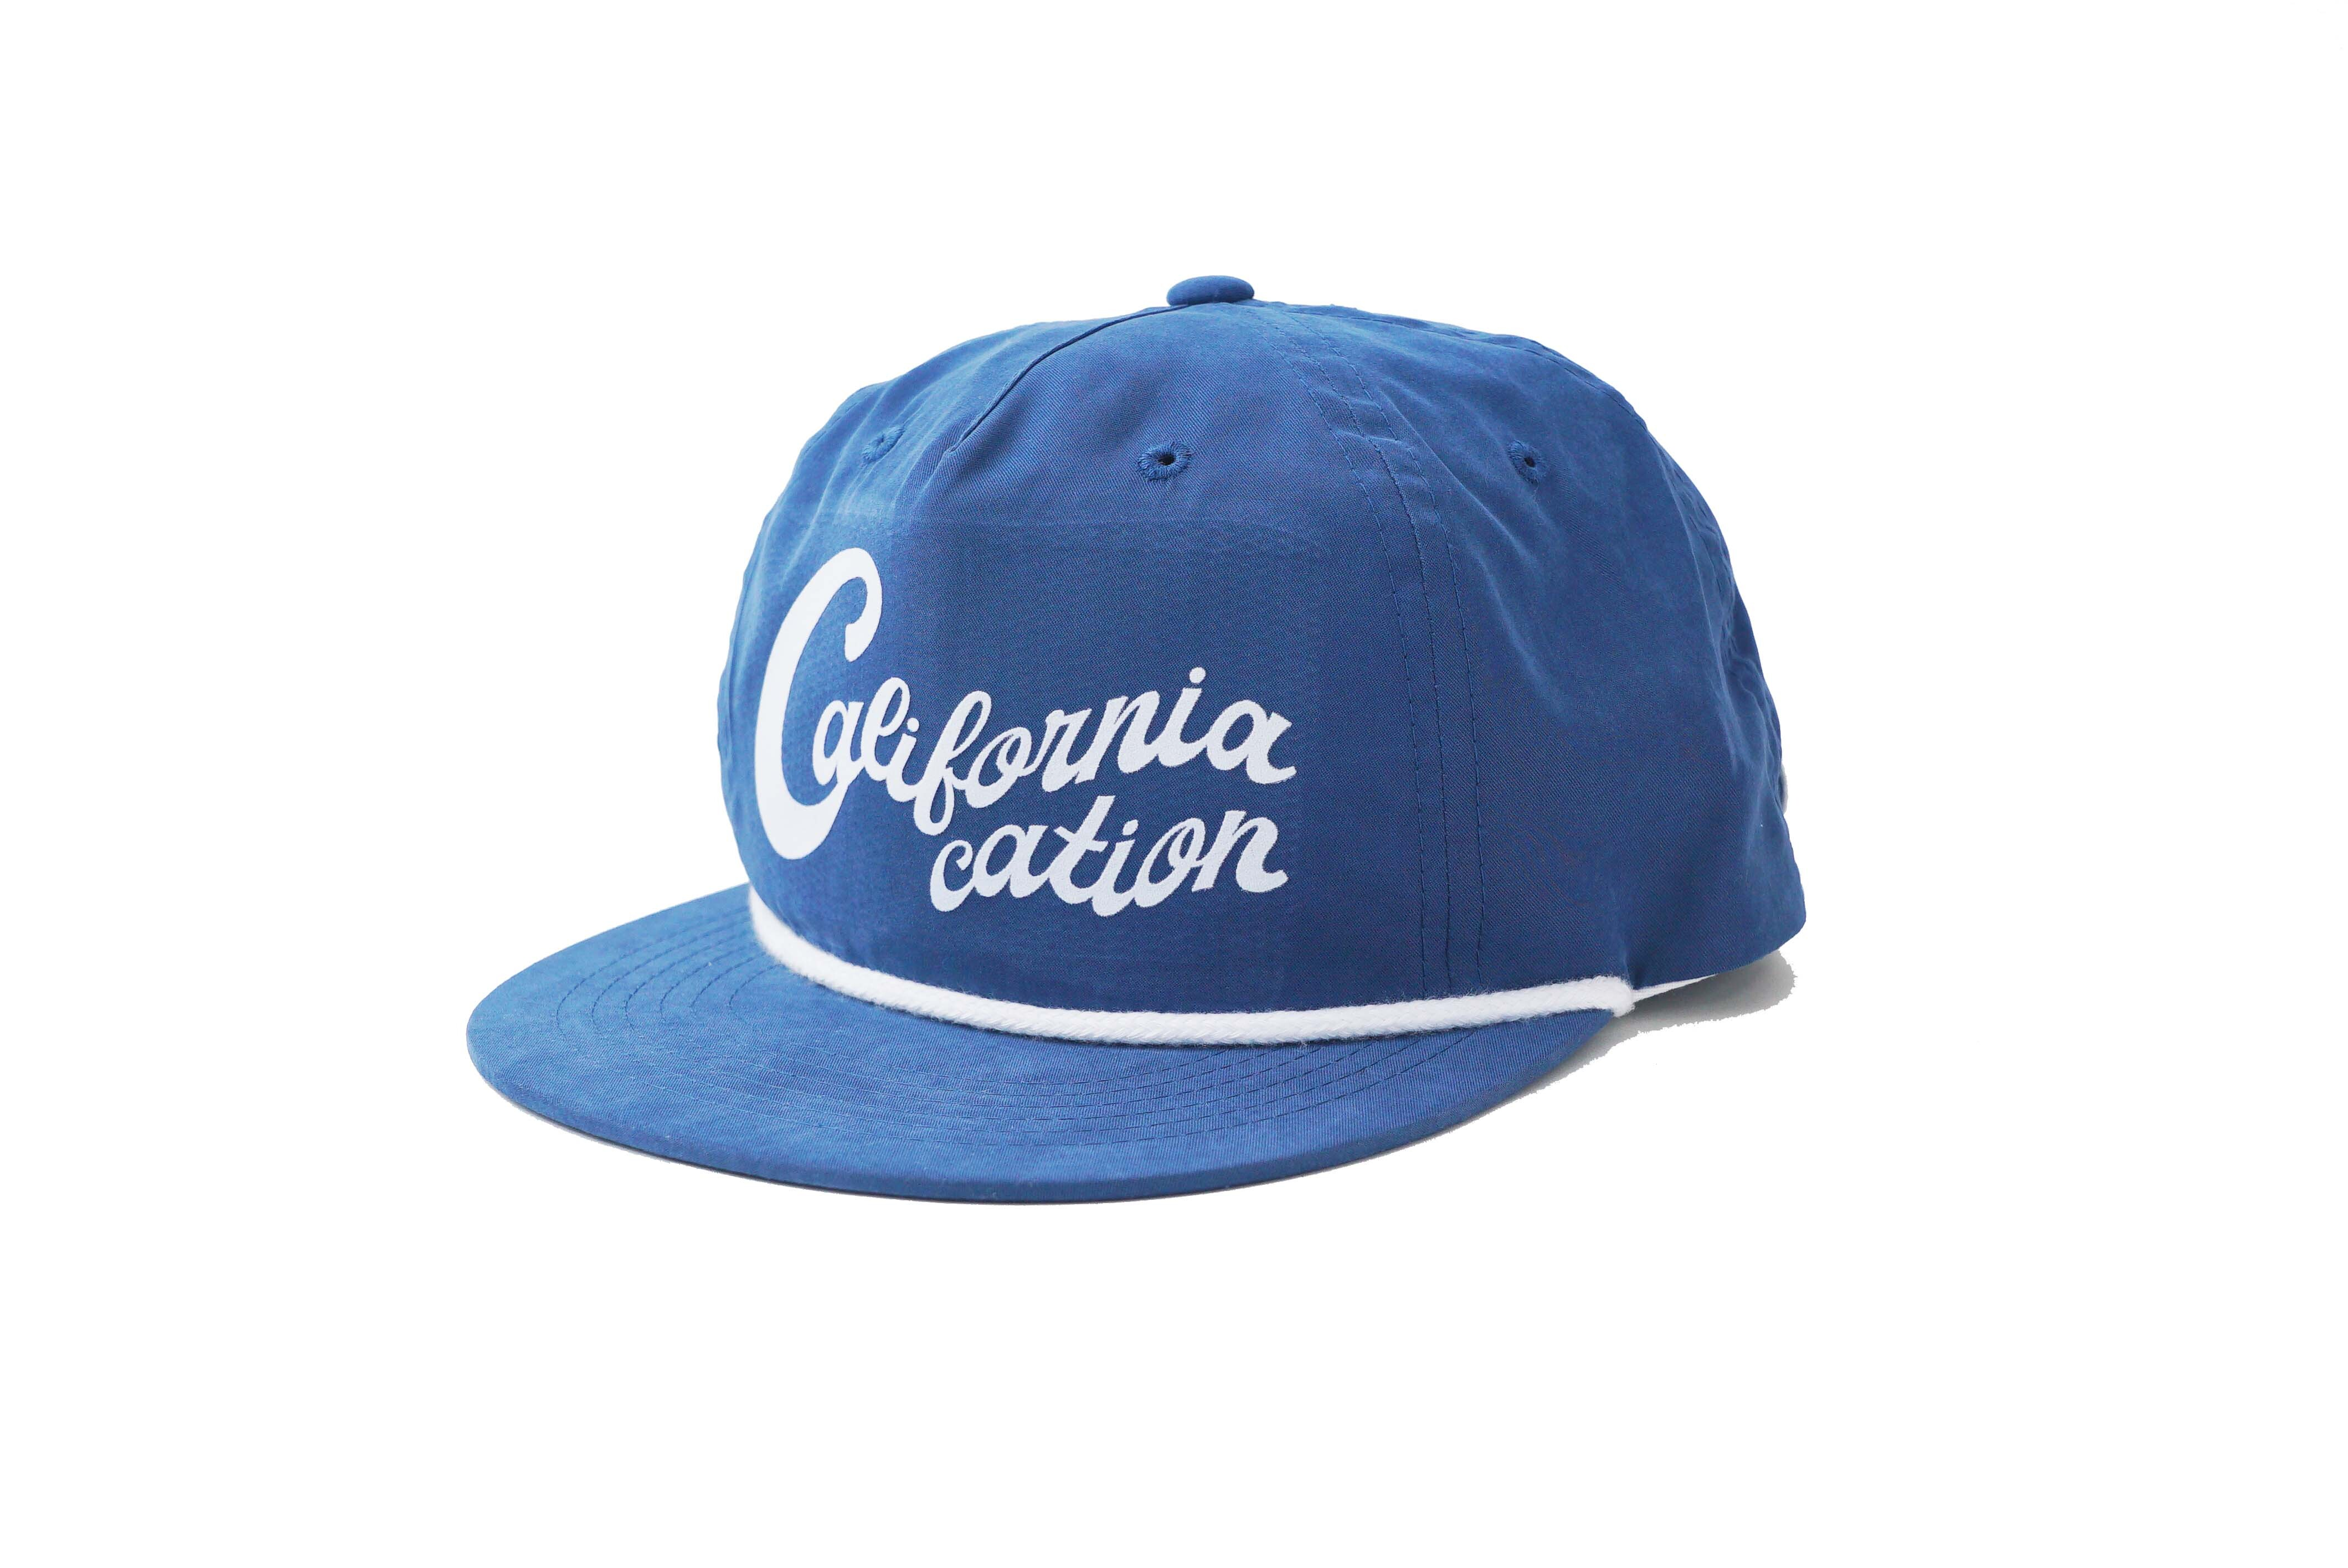 SURFSKATECAMP #Californiacation Cap Blue ¥6.300+tax